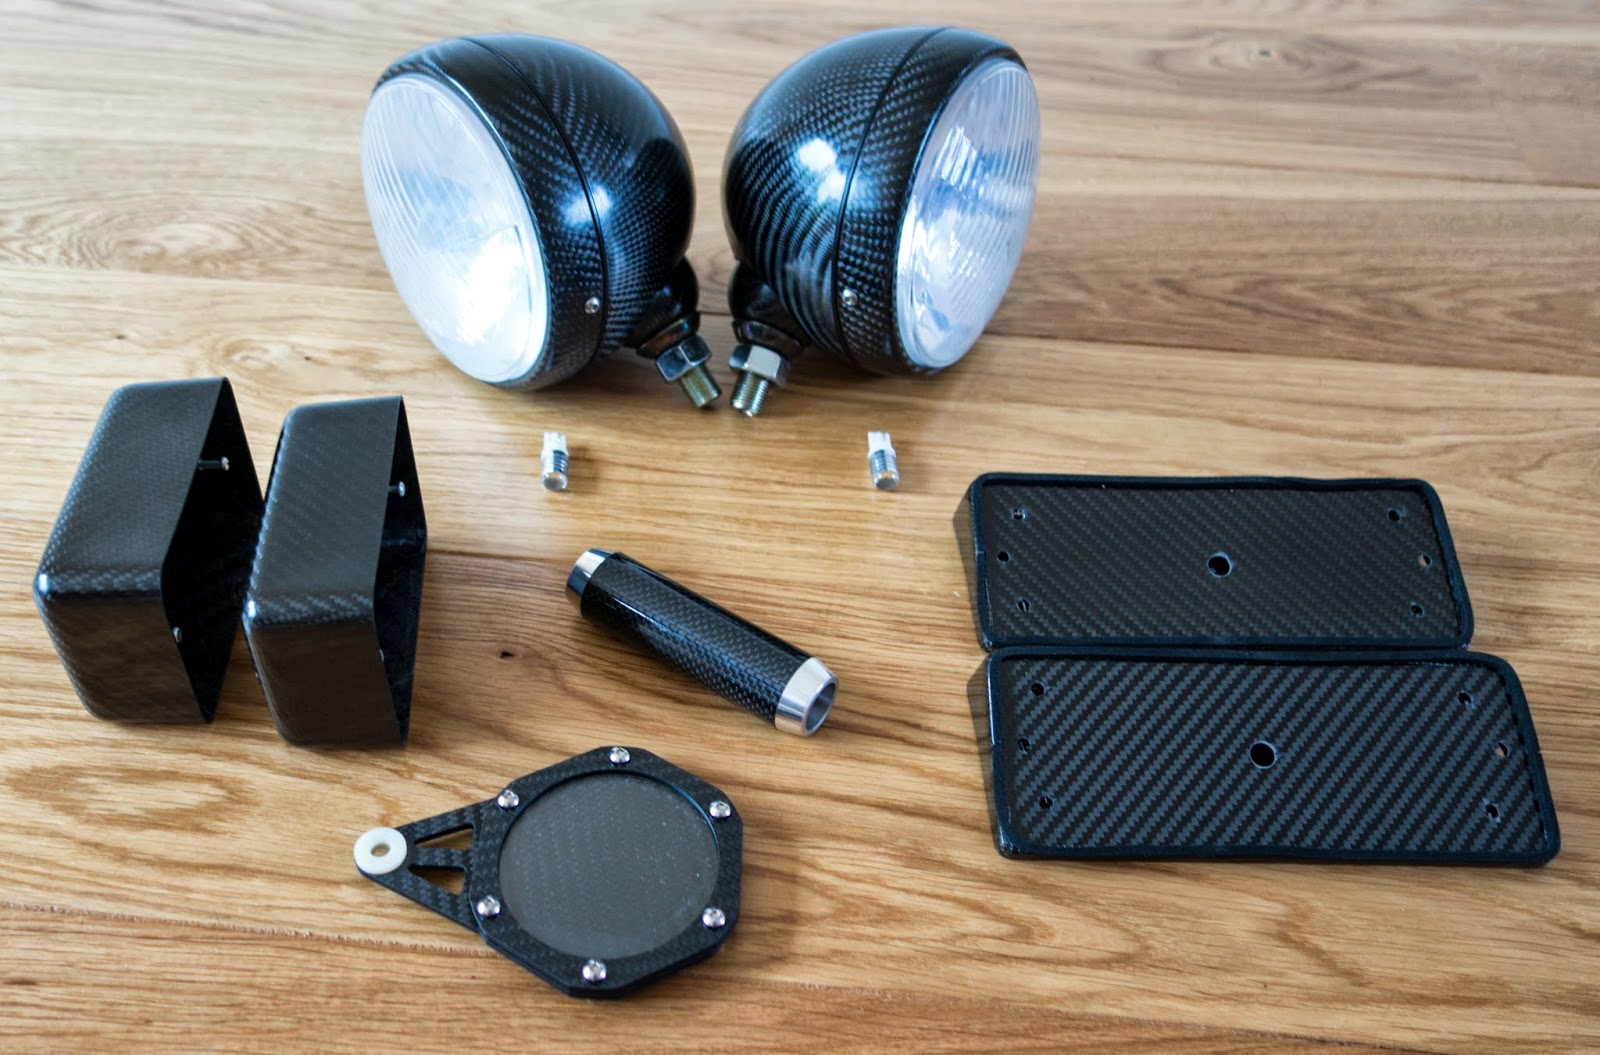 Caterham carbon accessories including headlights, rear light blocks, handbrake lever and tax disc holder